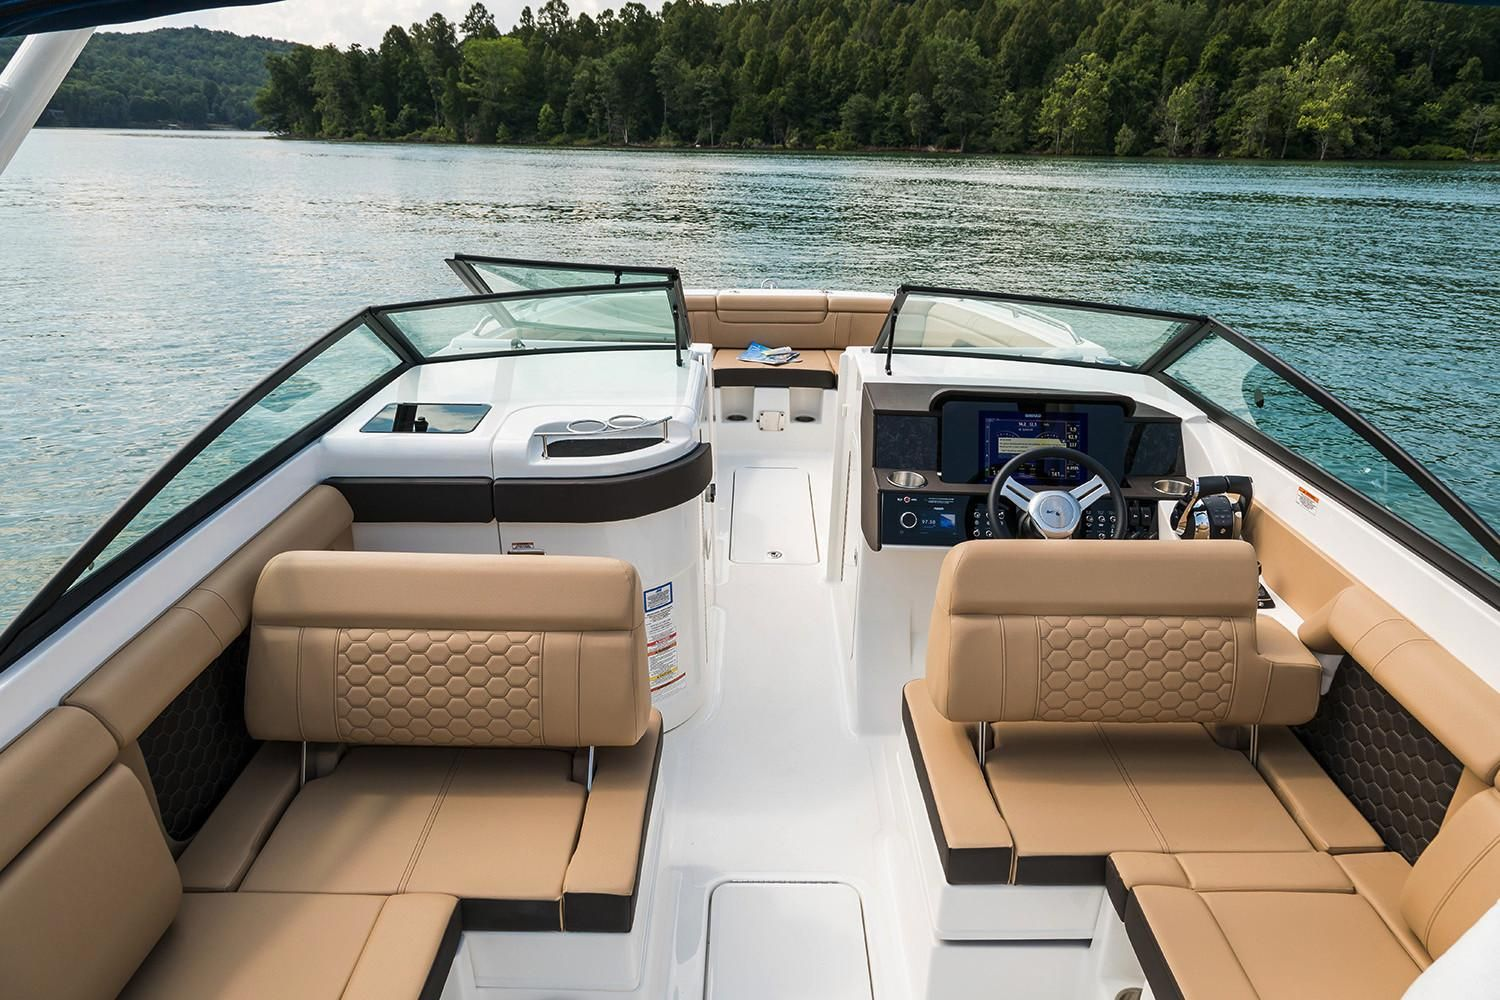 2021 Sea Ray                                                              SDX 290 Outboard Image Thumbnail #8